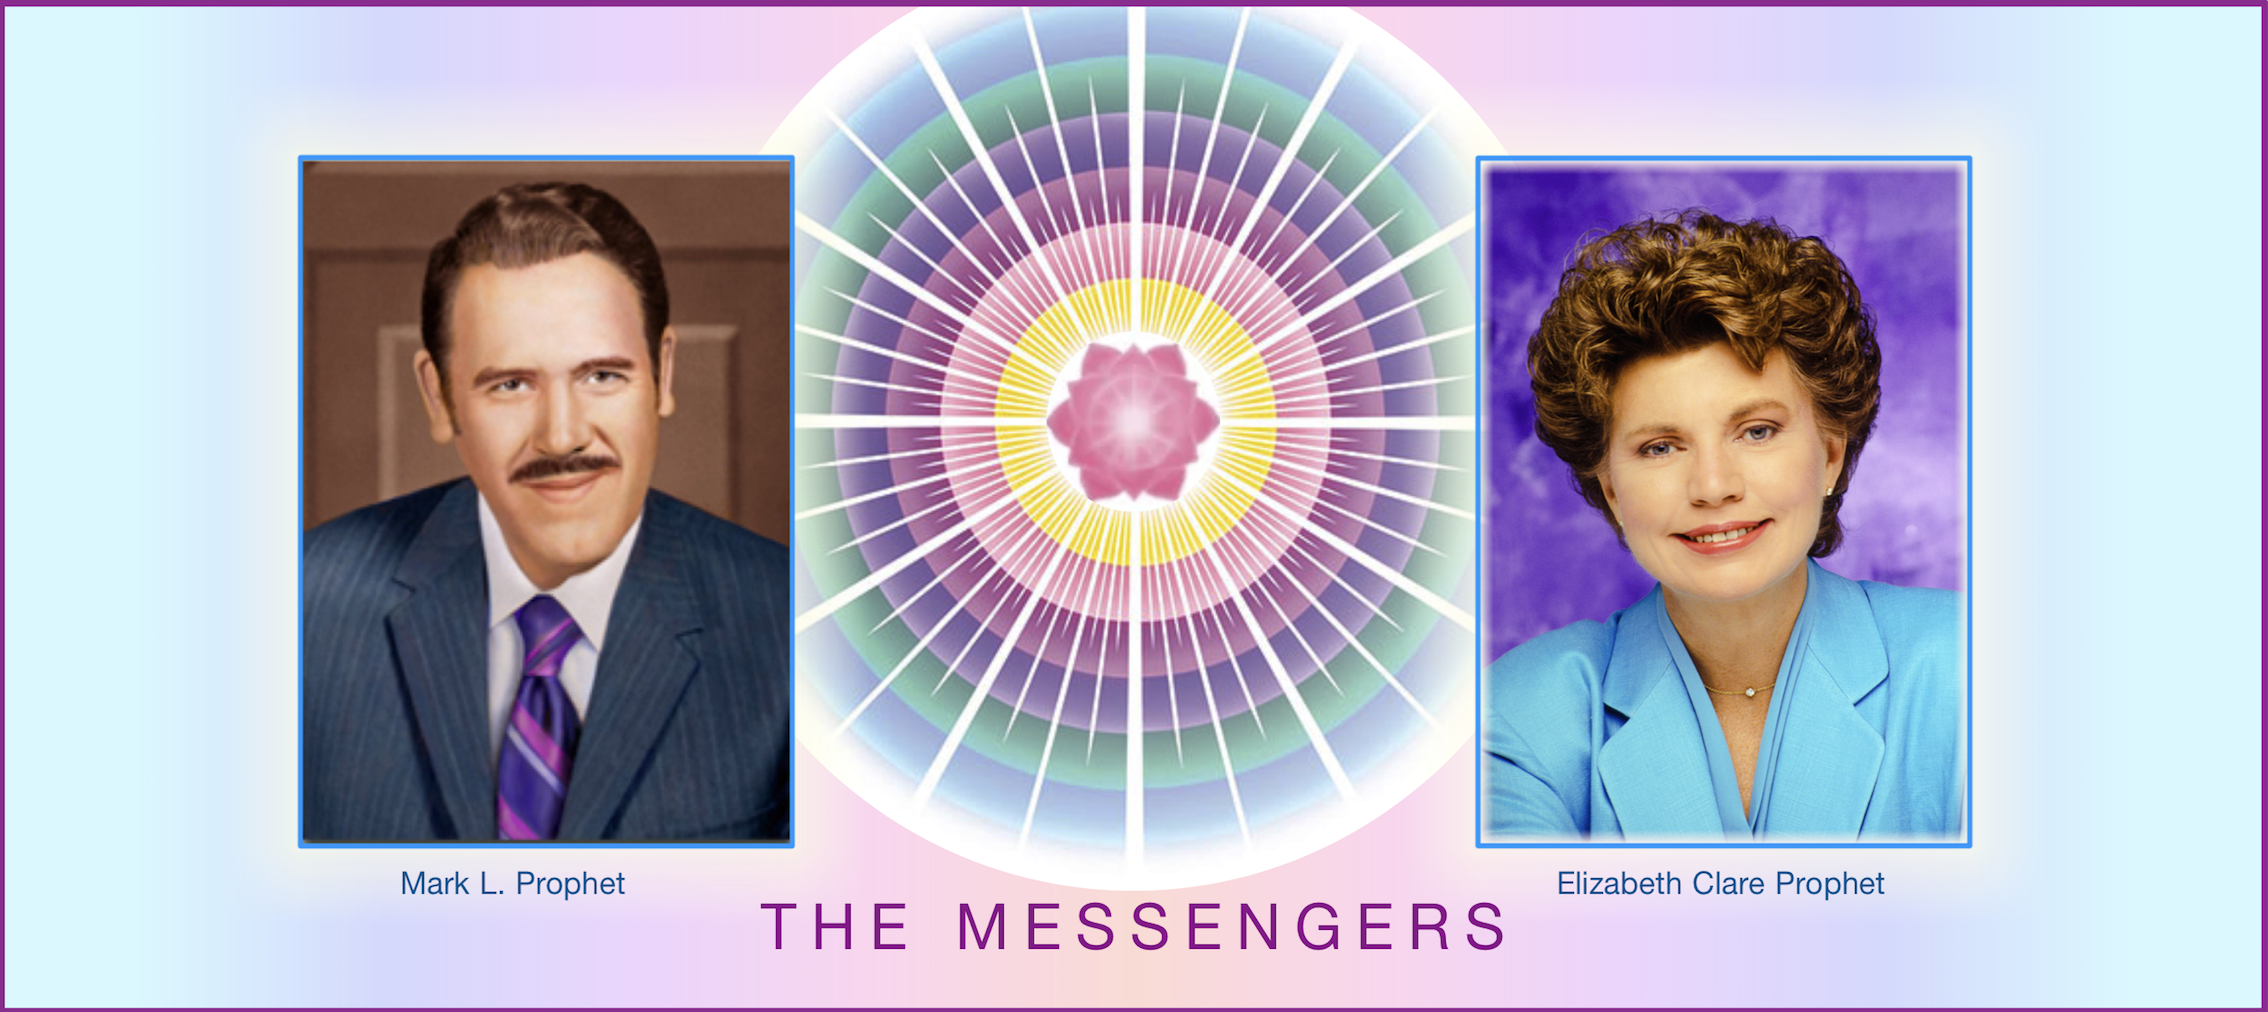 The Messengers - the Prophets